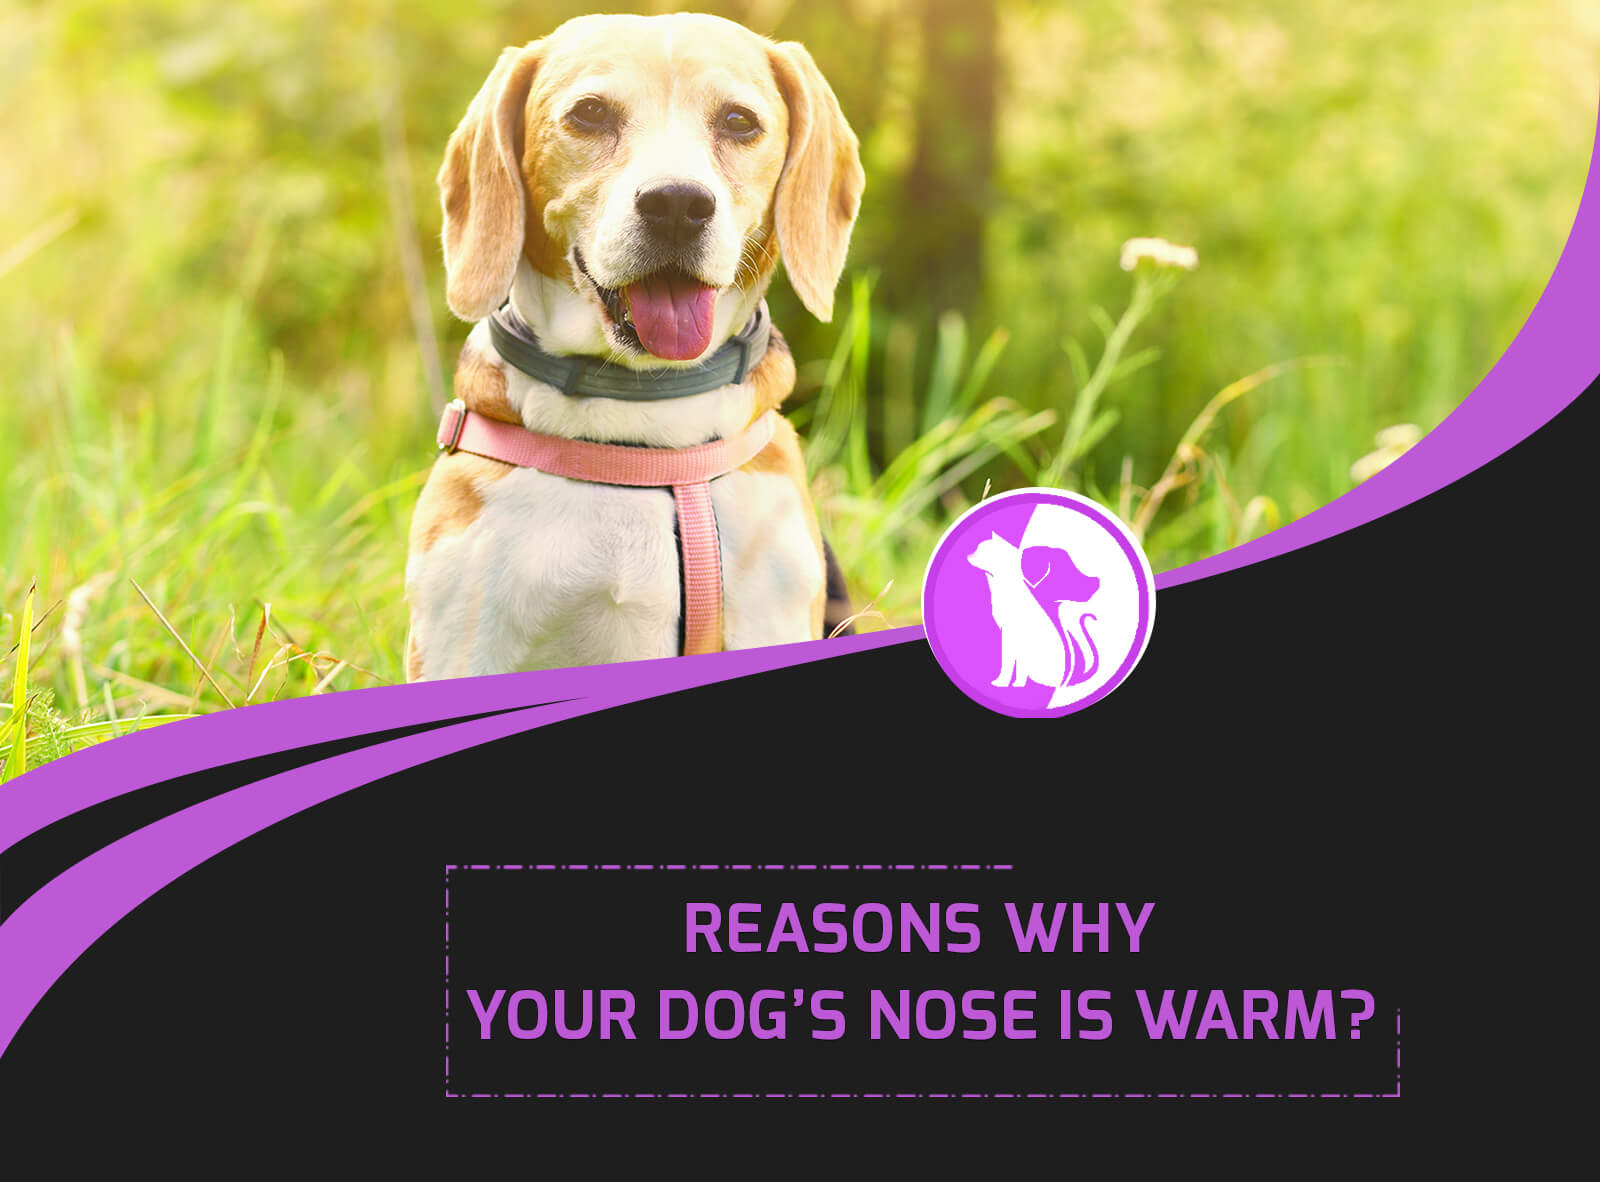 Reasons Why Your Dog's Nose Is Warm